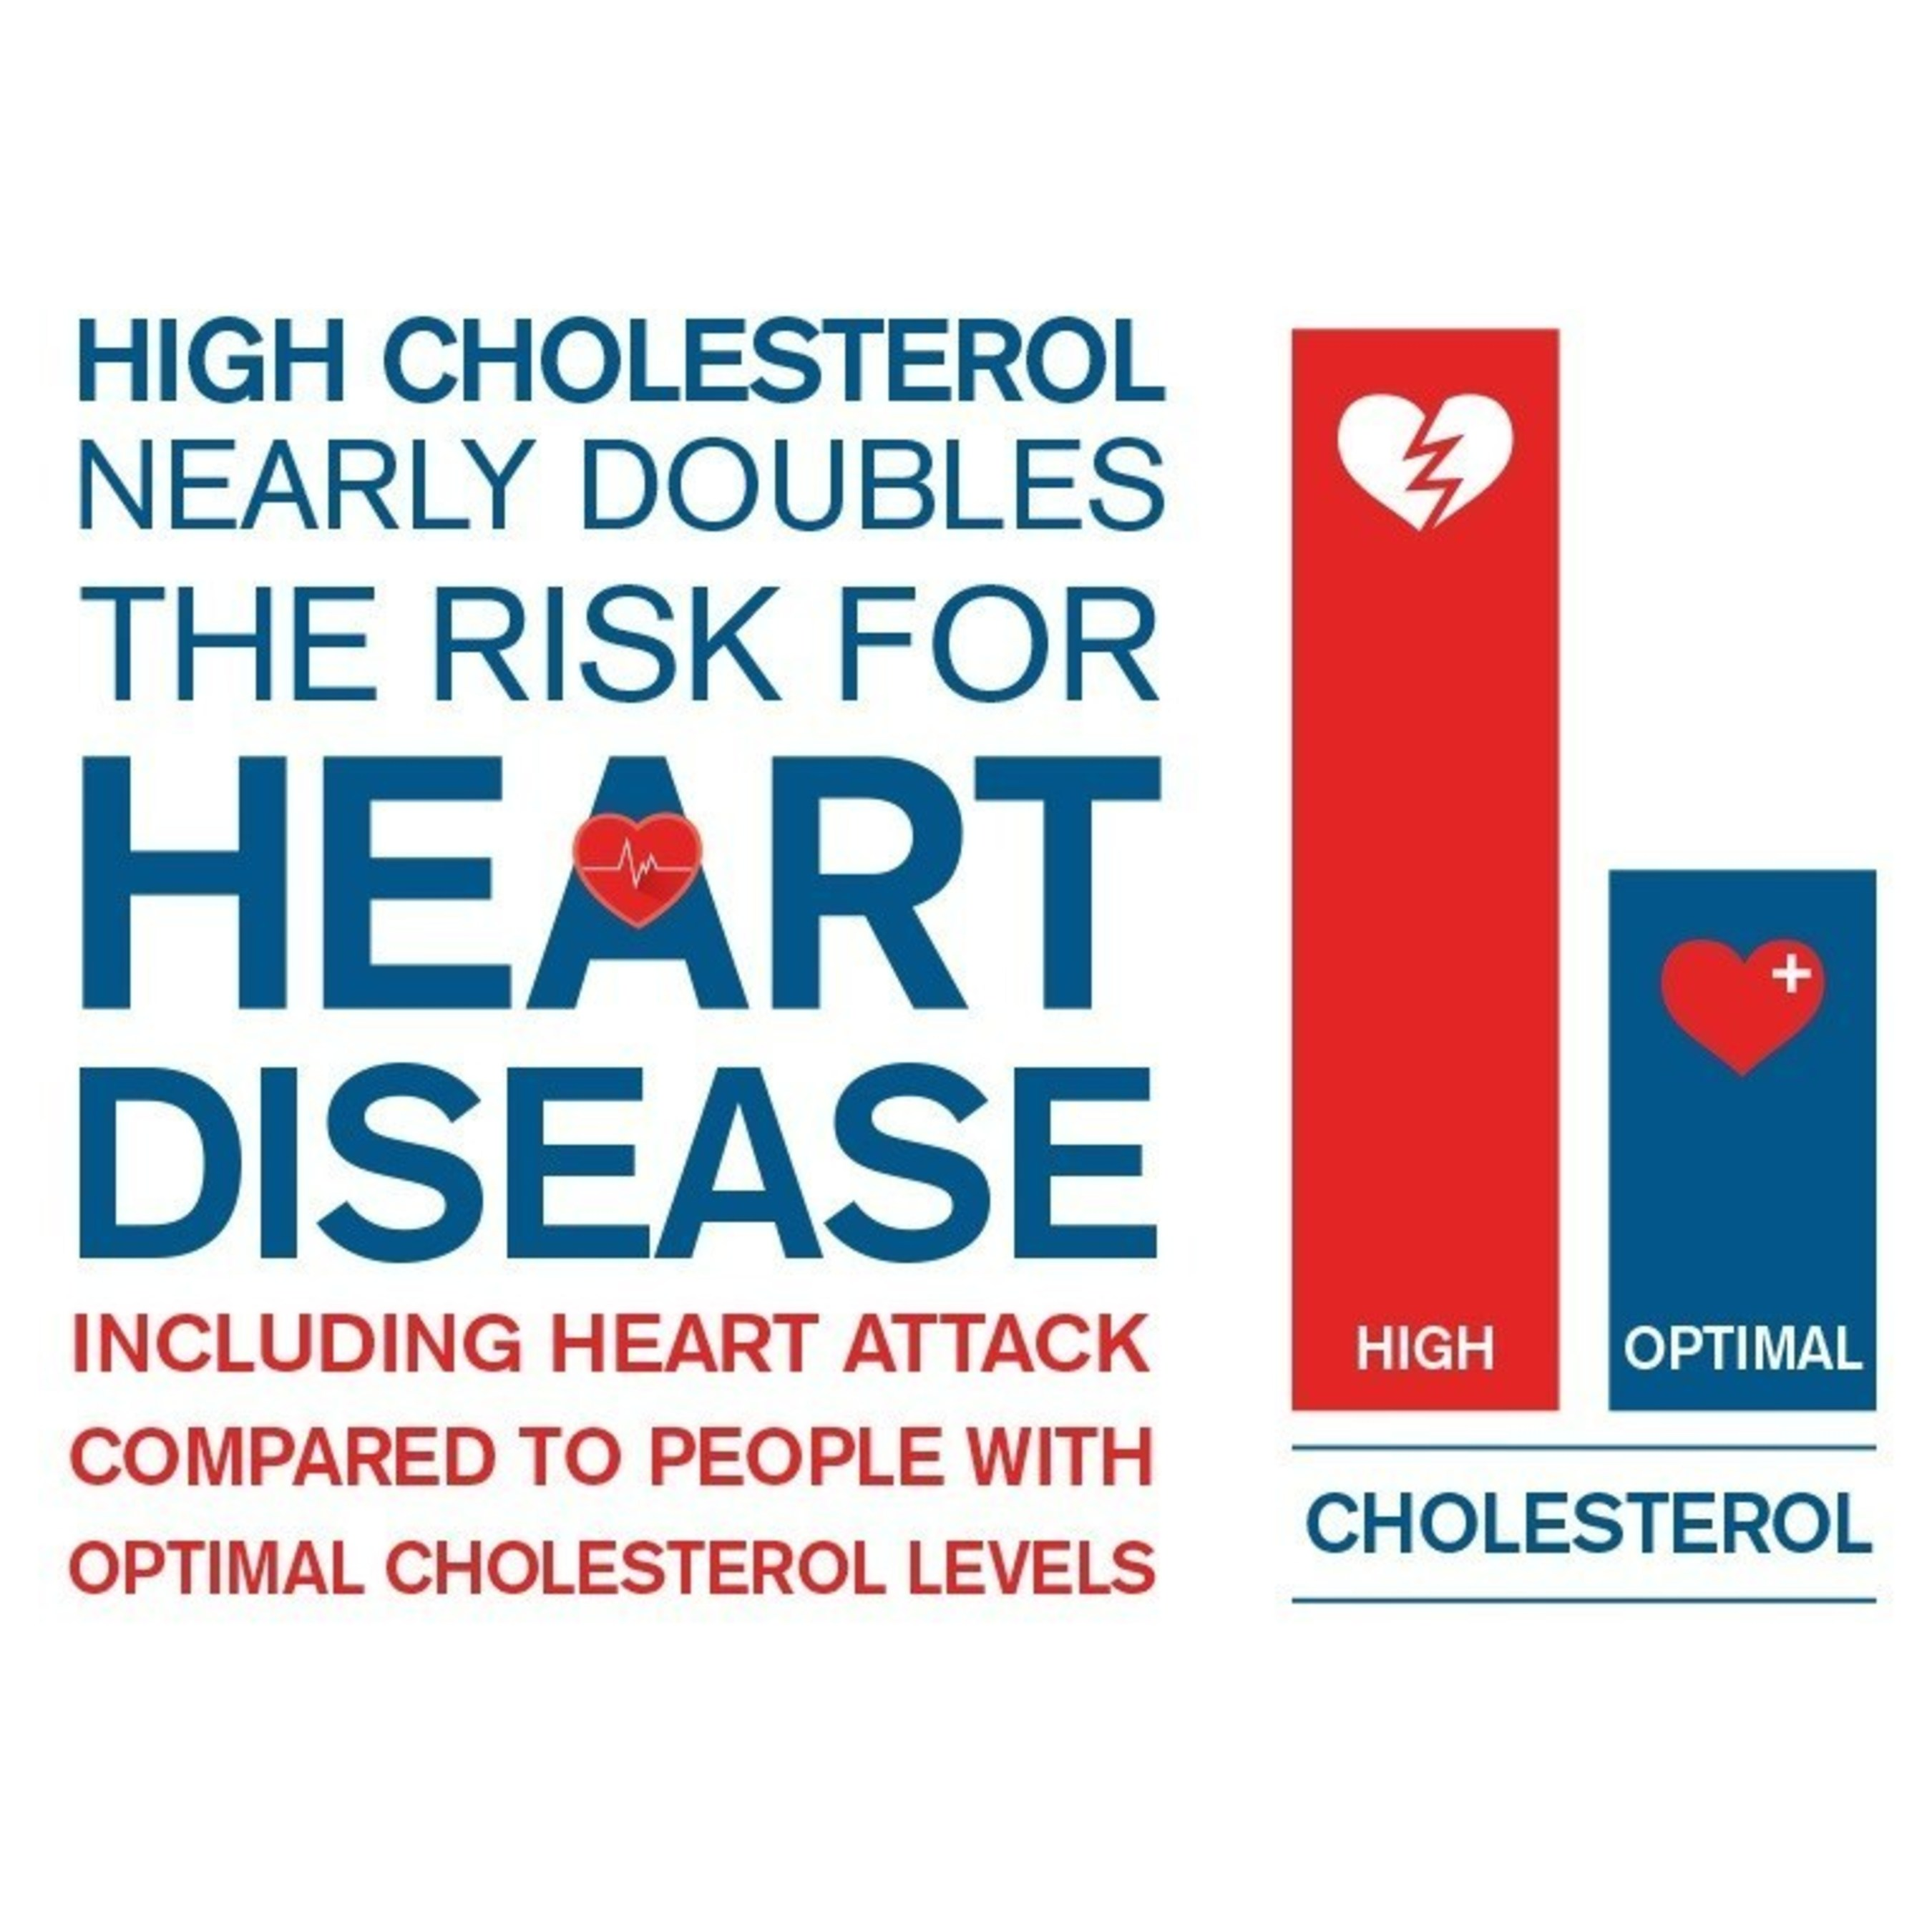 Having high cholesterol nearly doubles your risk for heart disease